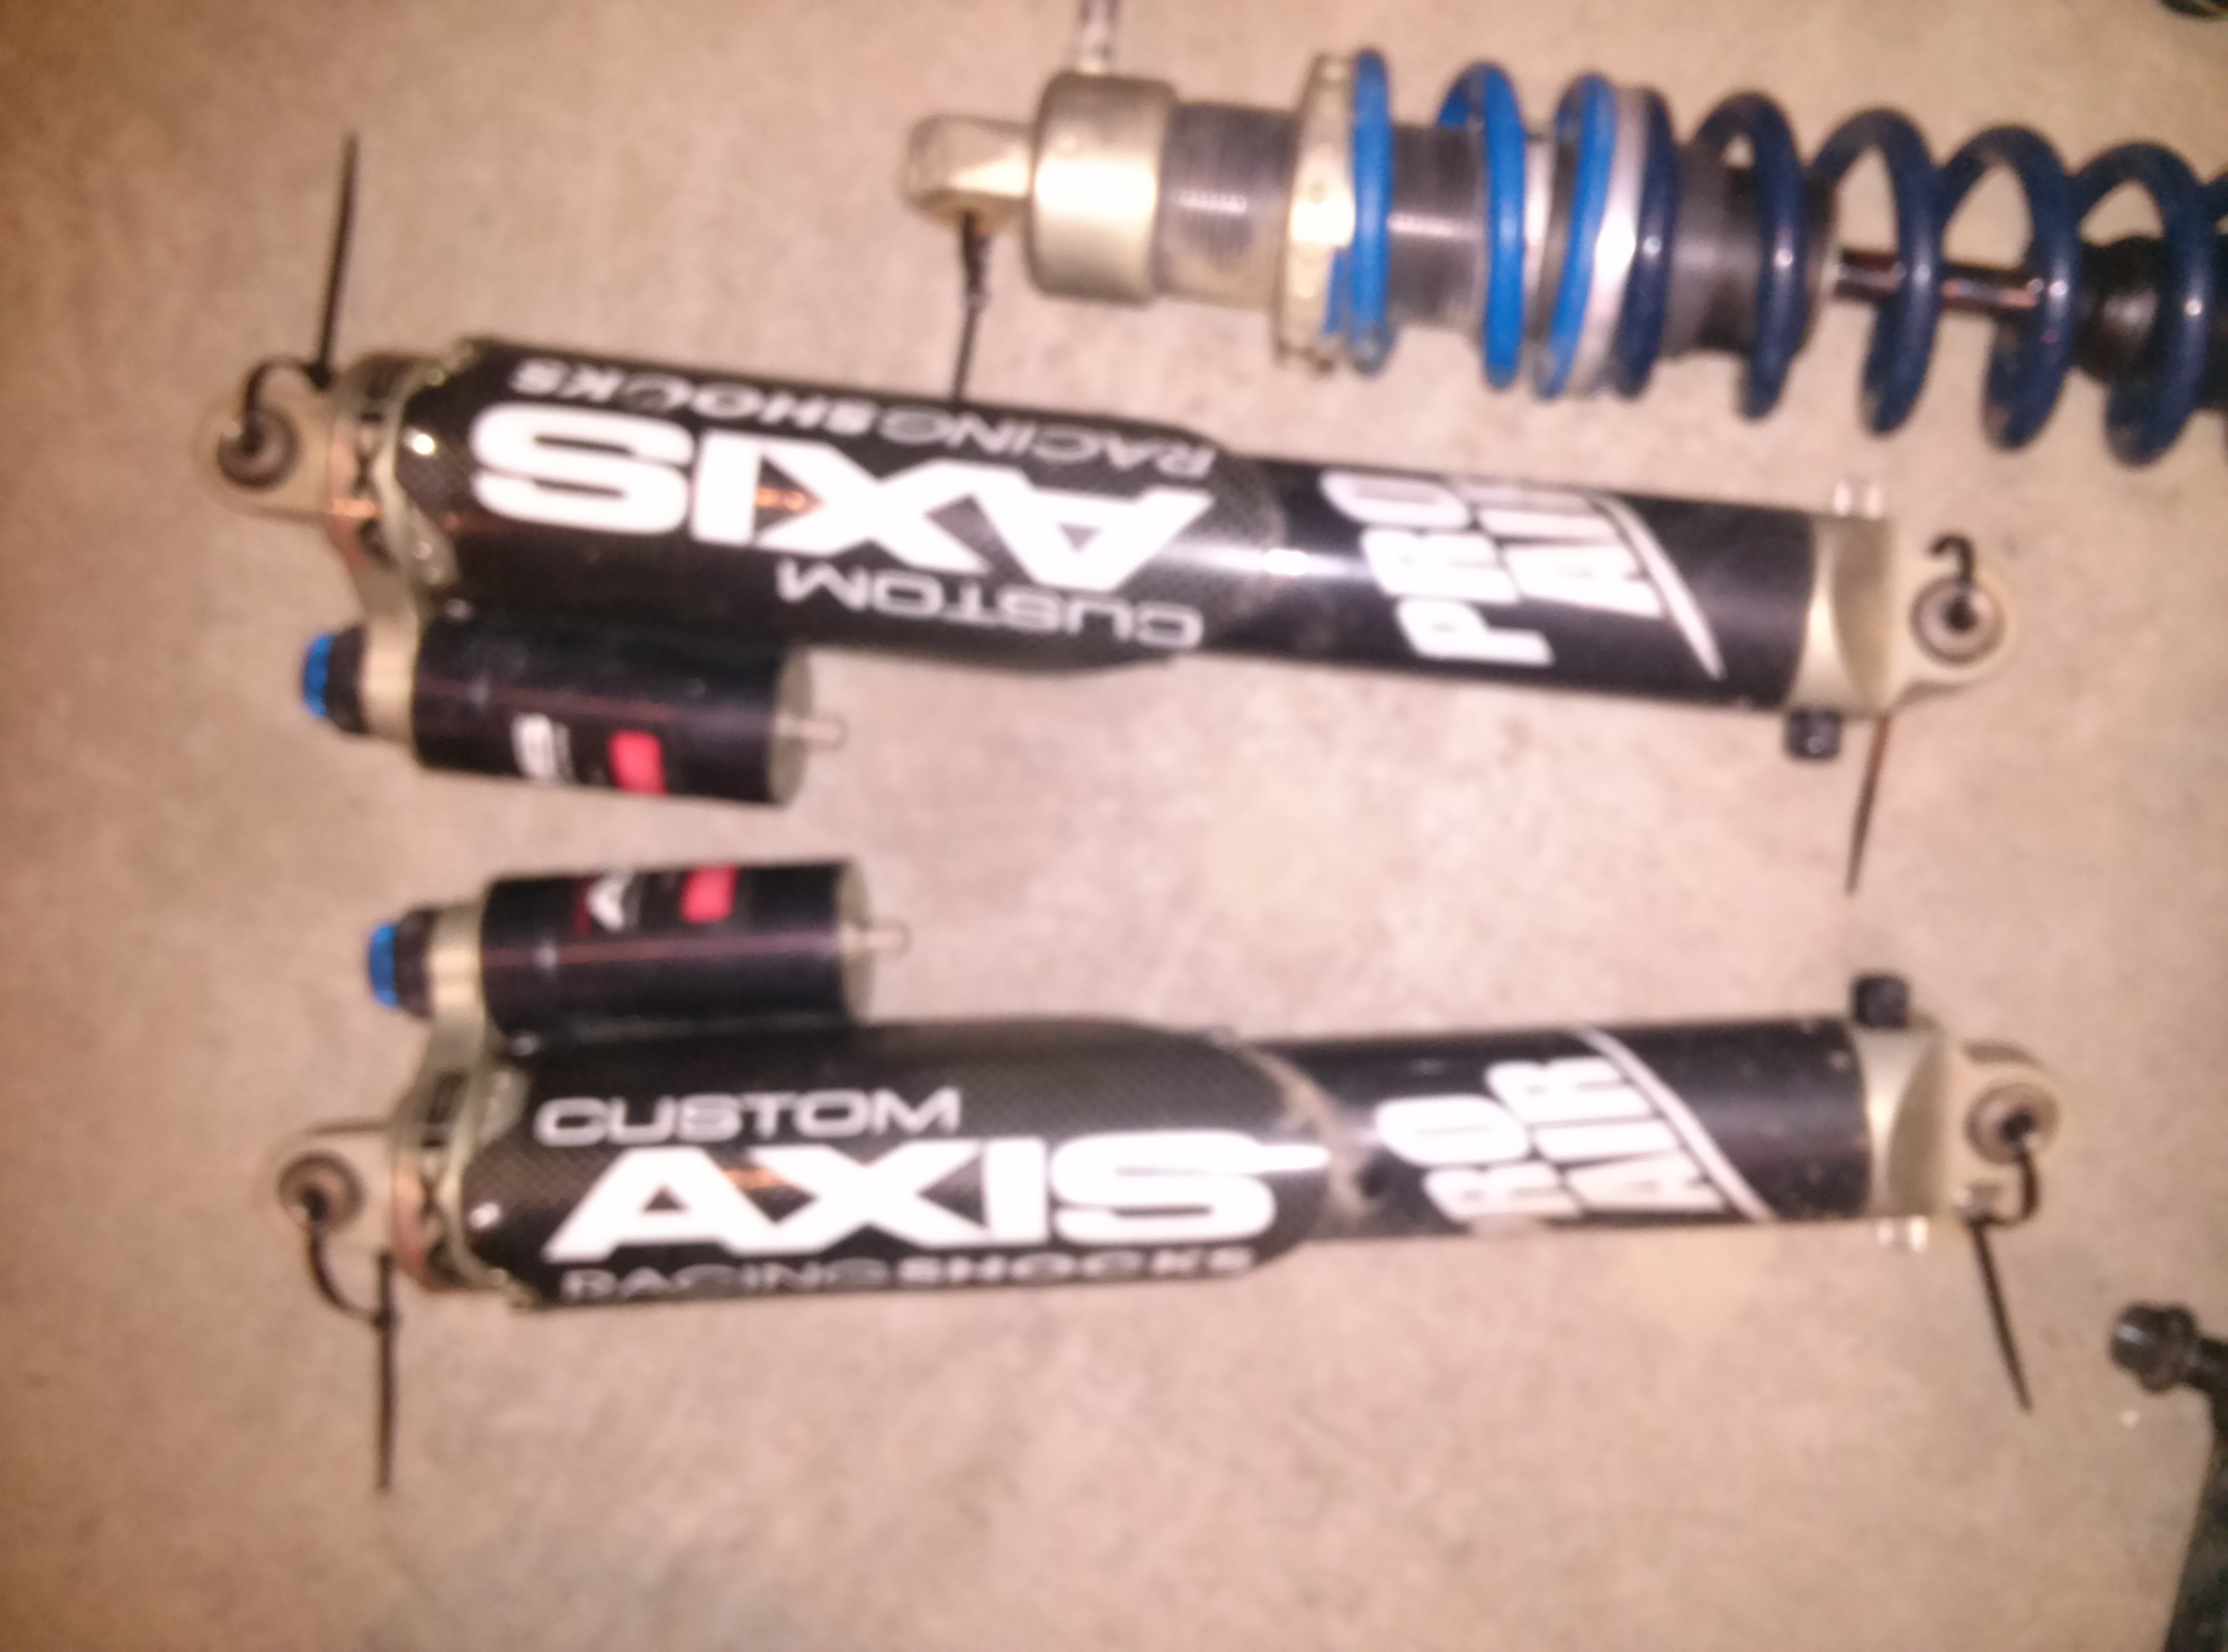 Custom Axis shocks